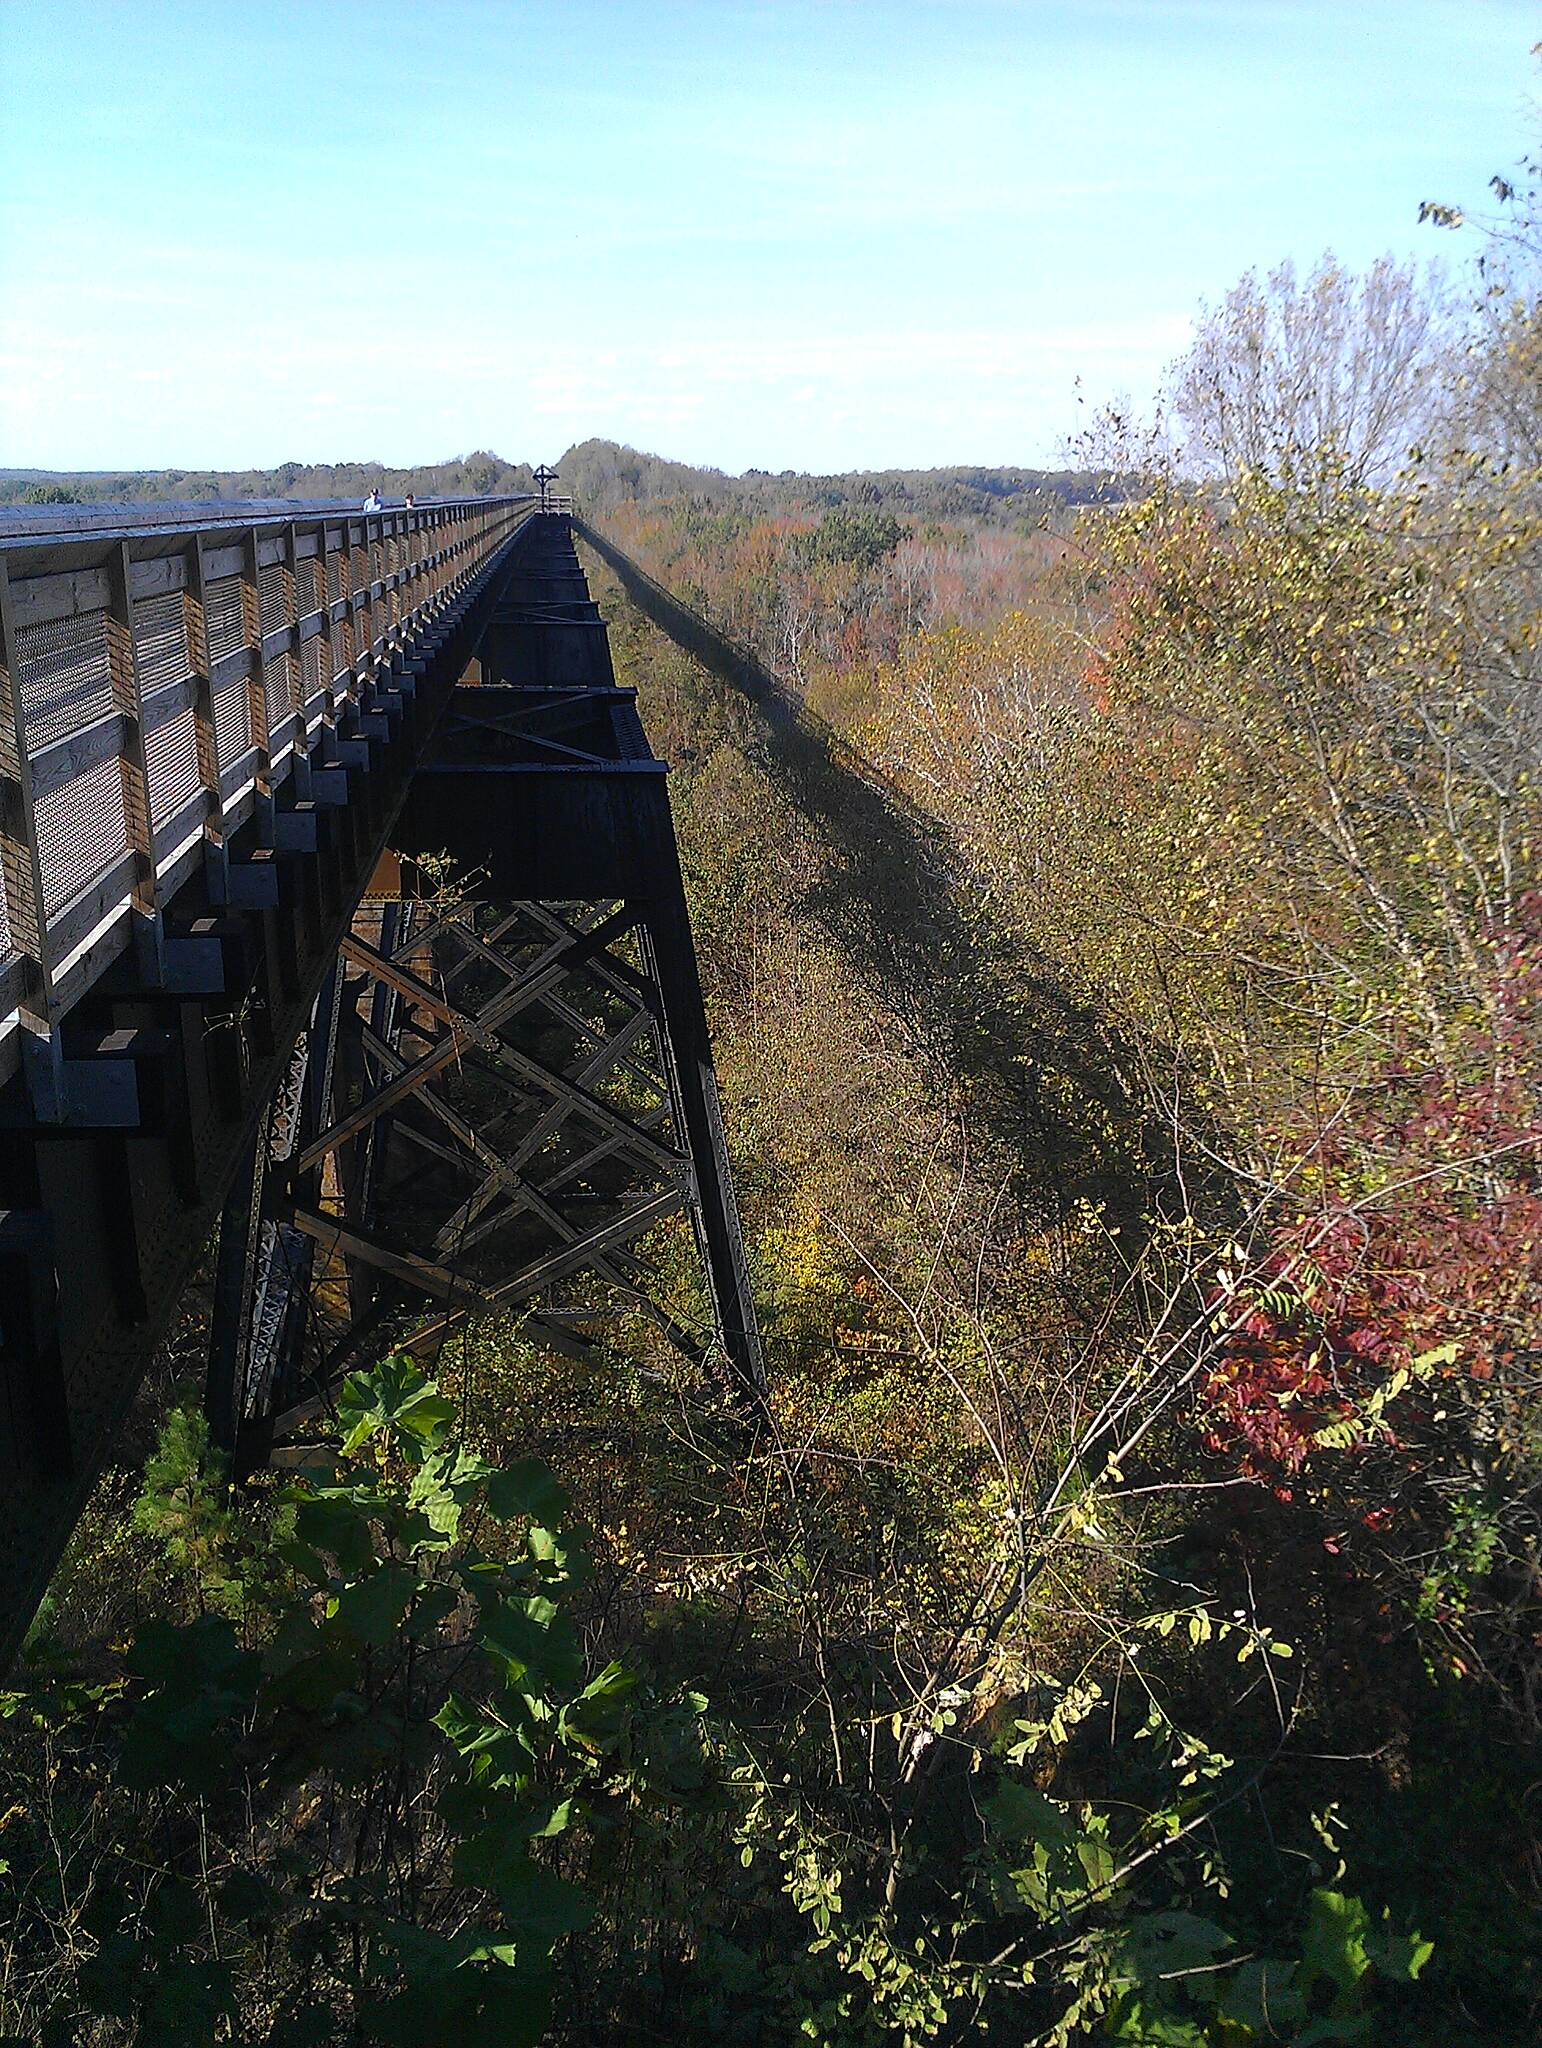 High Bridge Trail Bridge and its shadow. Afternoon view of the eastern end of the bridge.